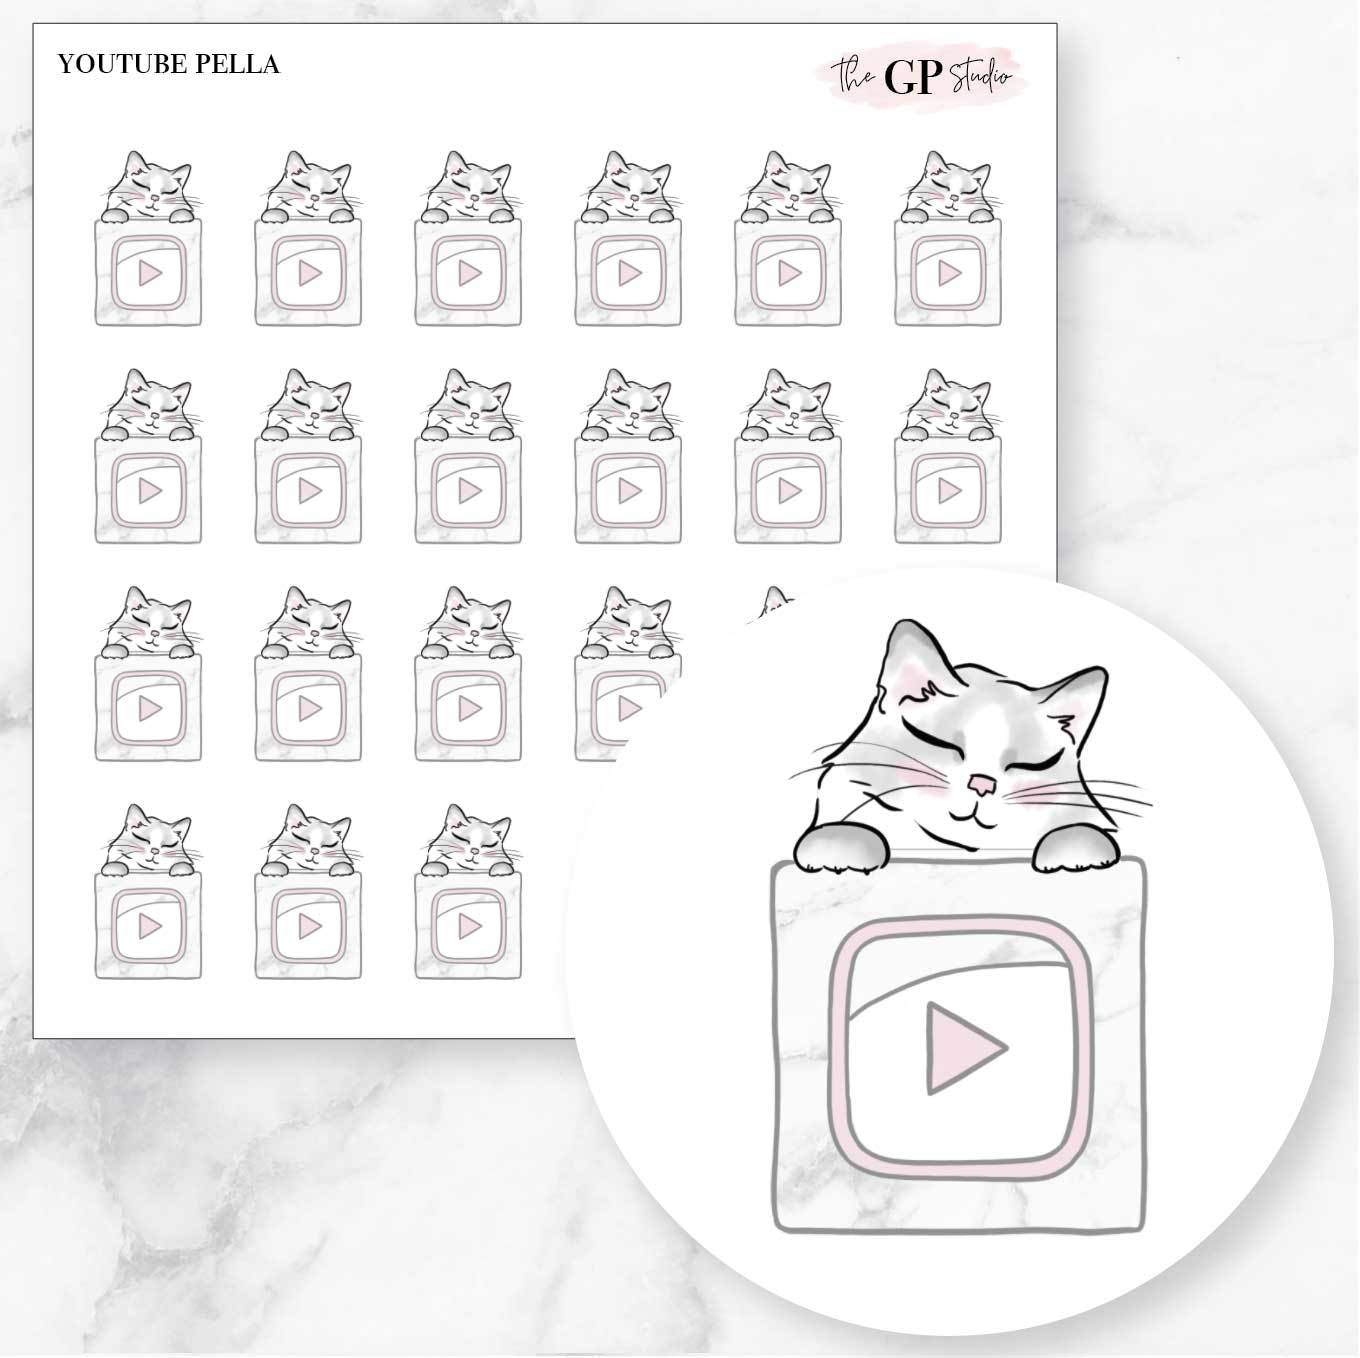 YOUTUBE PELLA Planner Stickers-The GP Studio